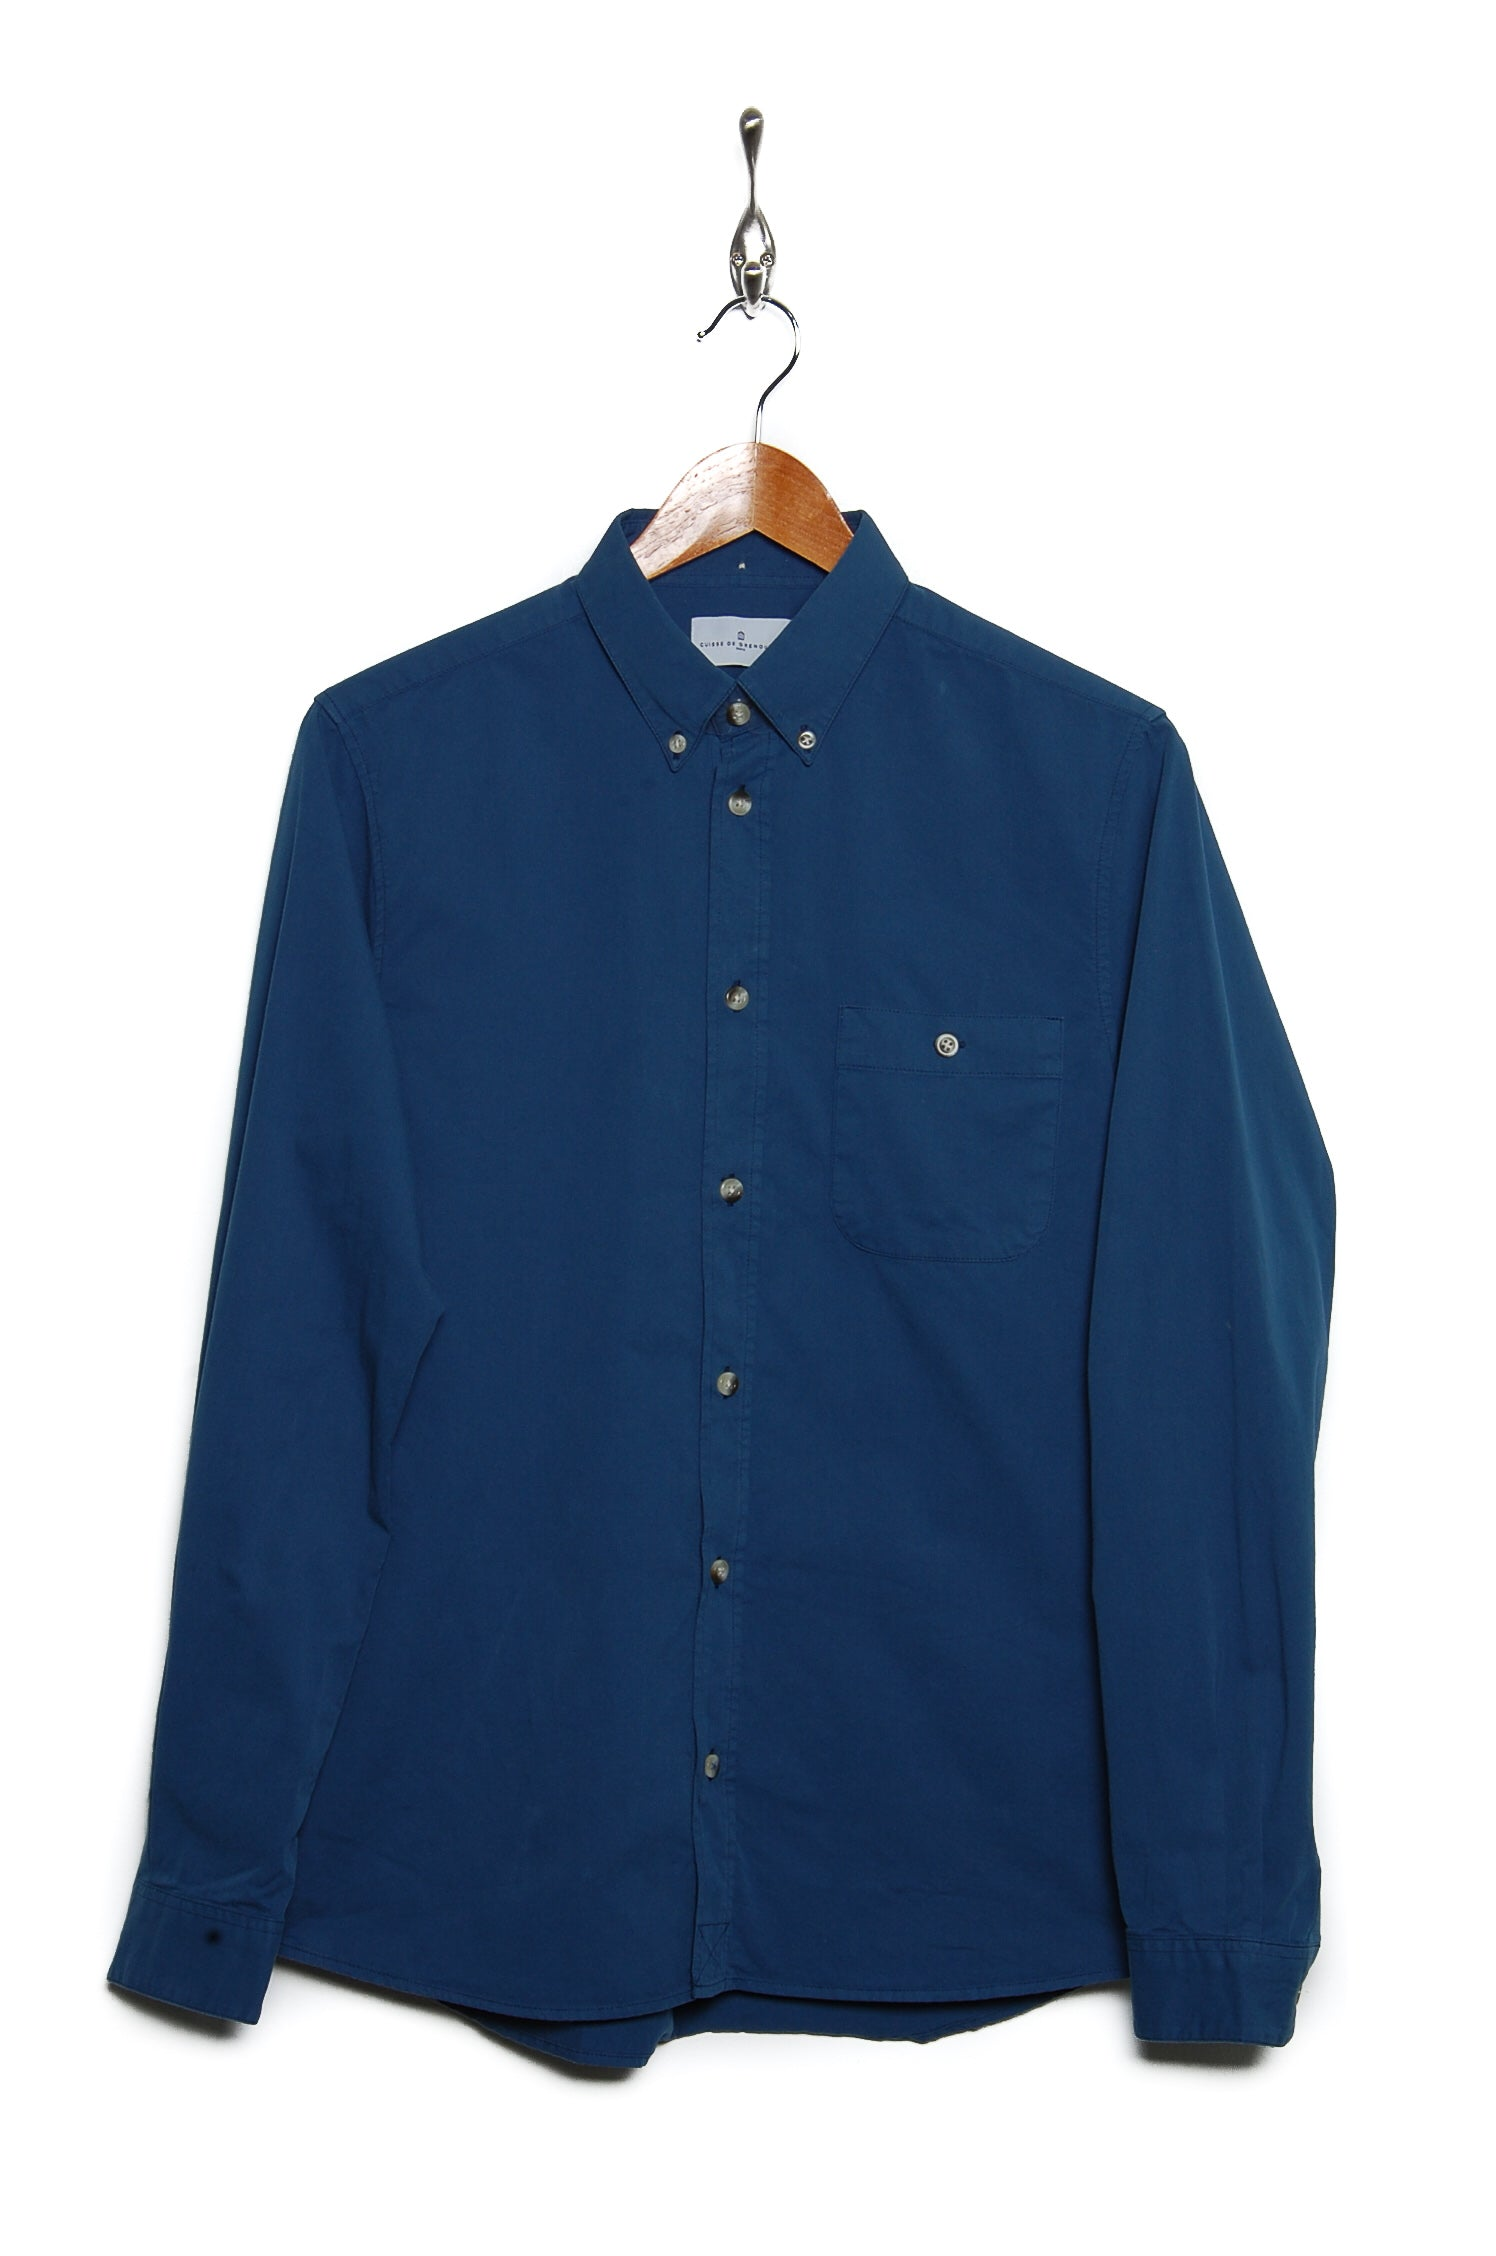 Cuisse de Grenouille Griffon button down indian blue